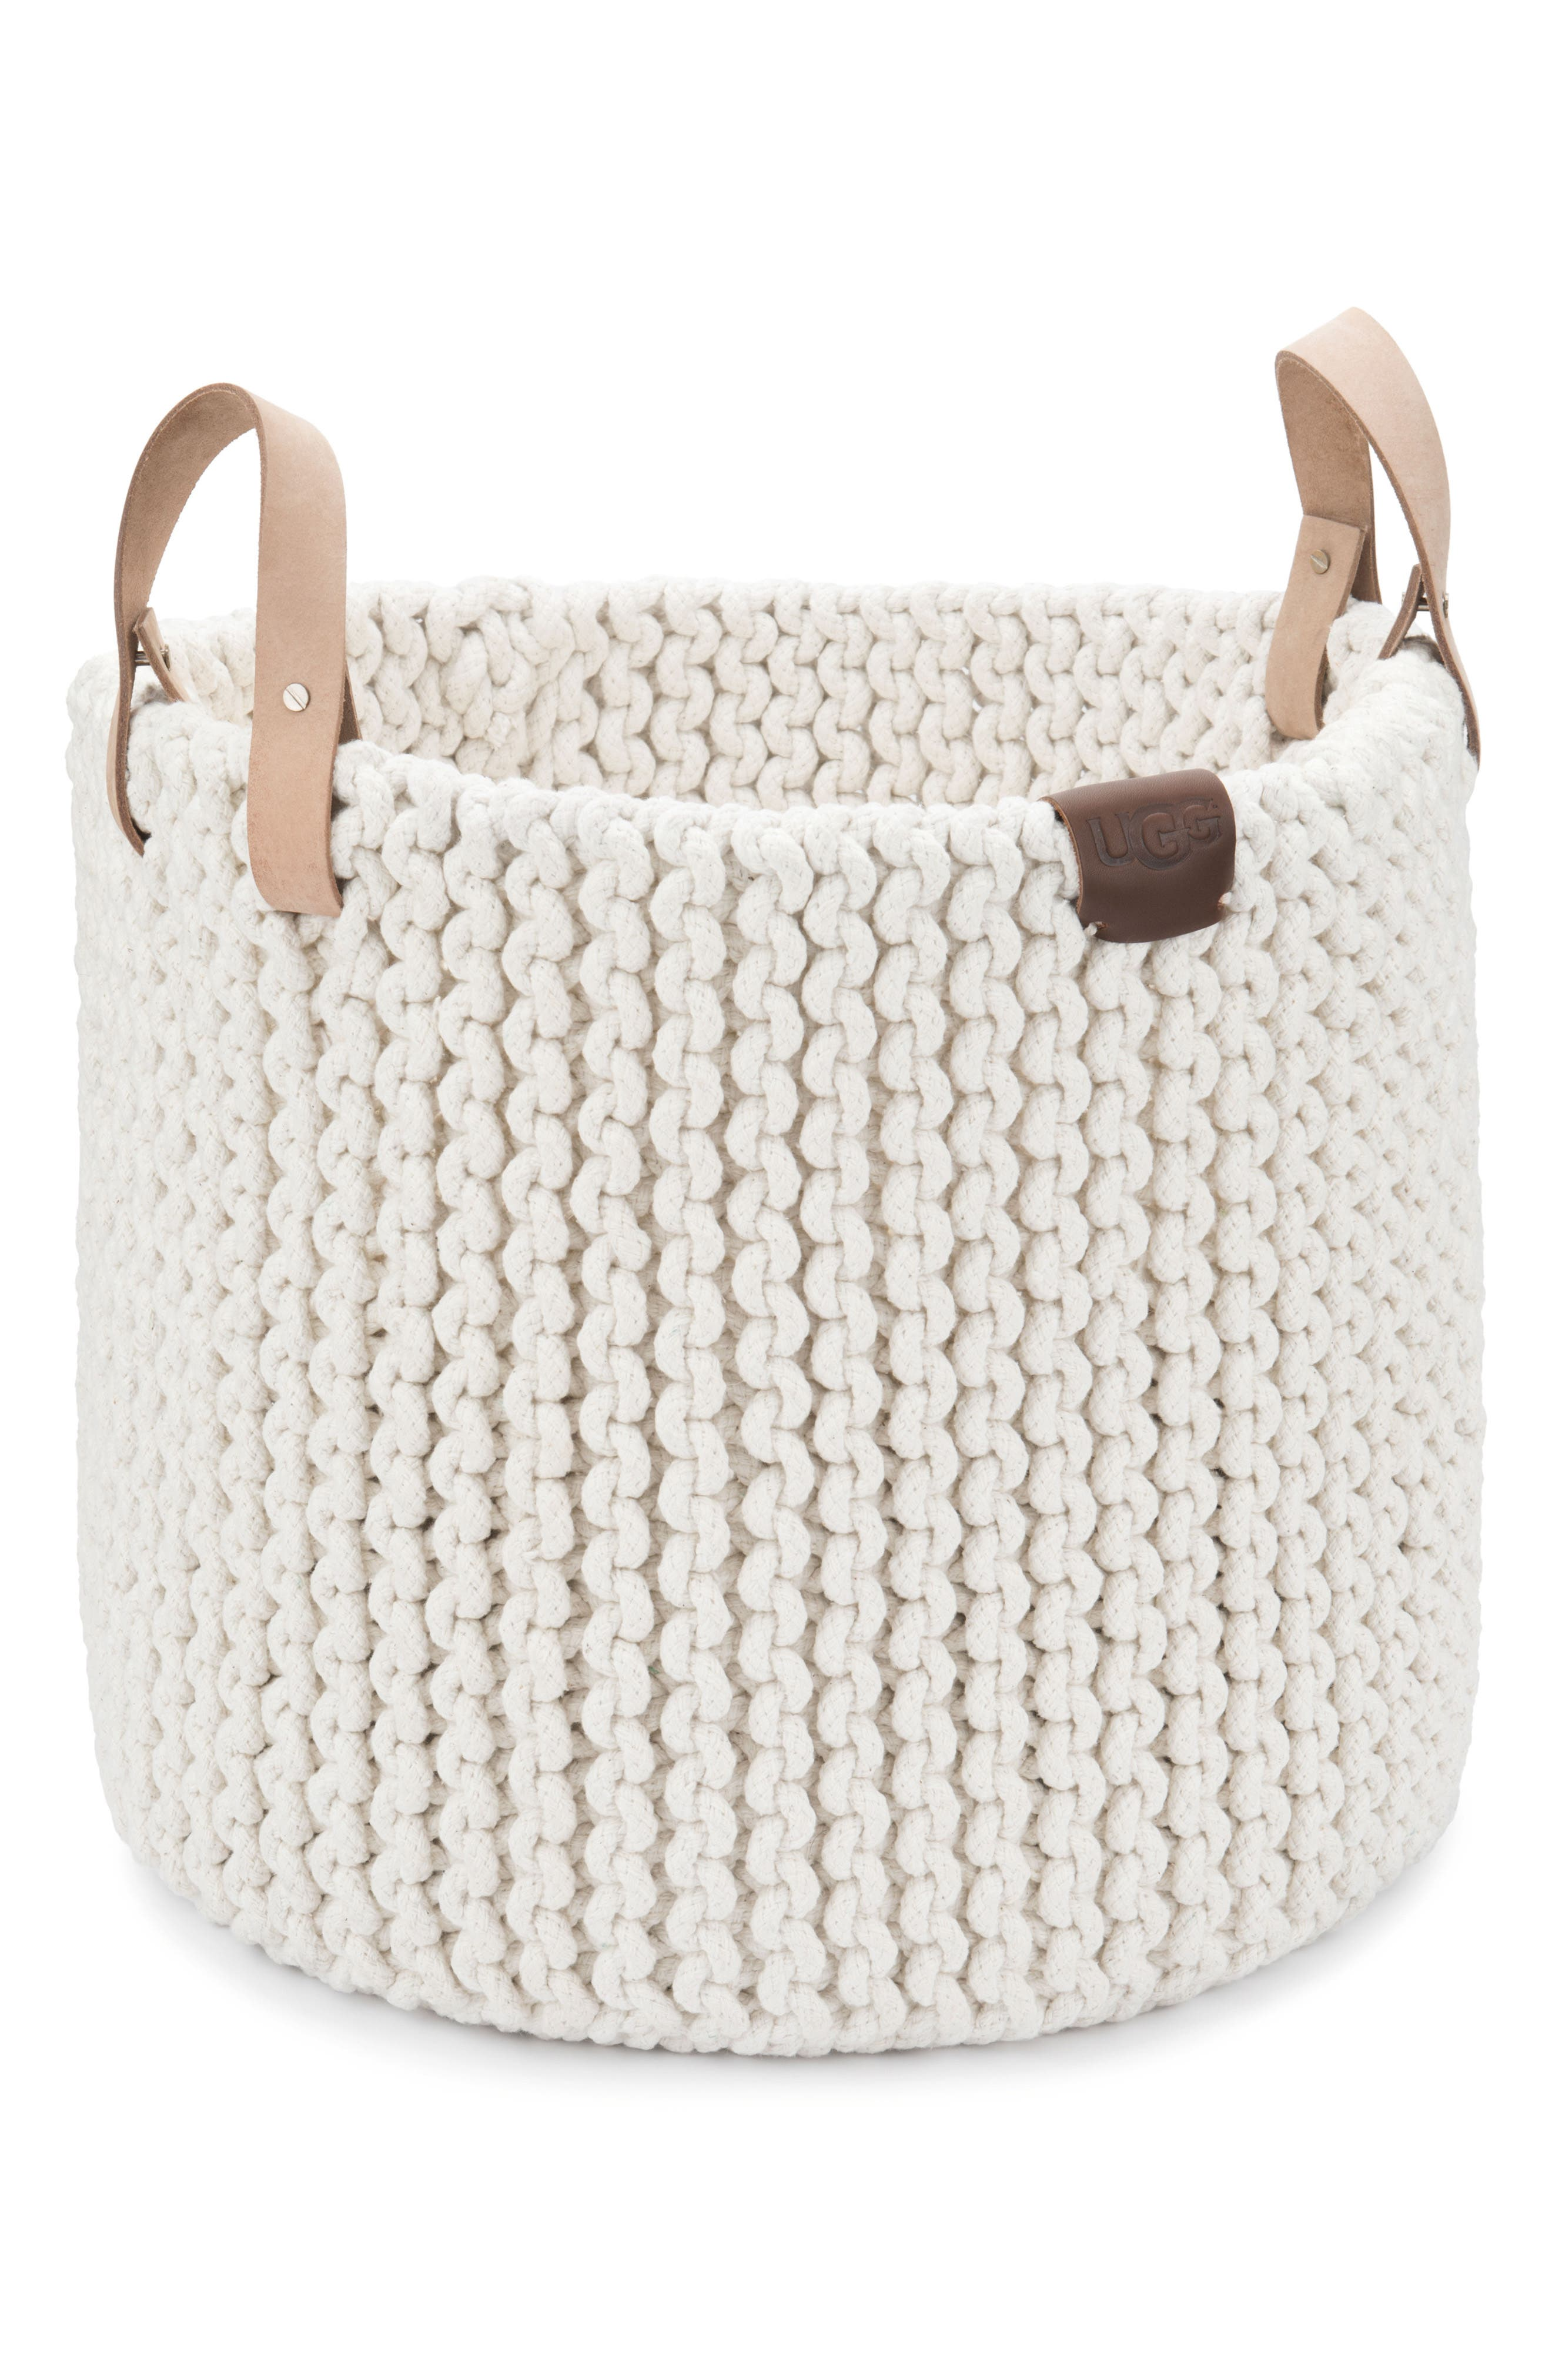 Tulum Rope Basket,                             Main thumbnail 1, color,                             NATURAL